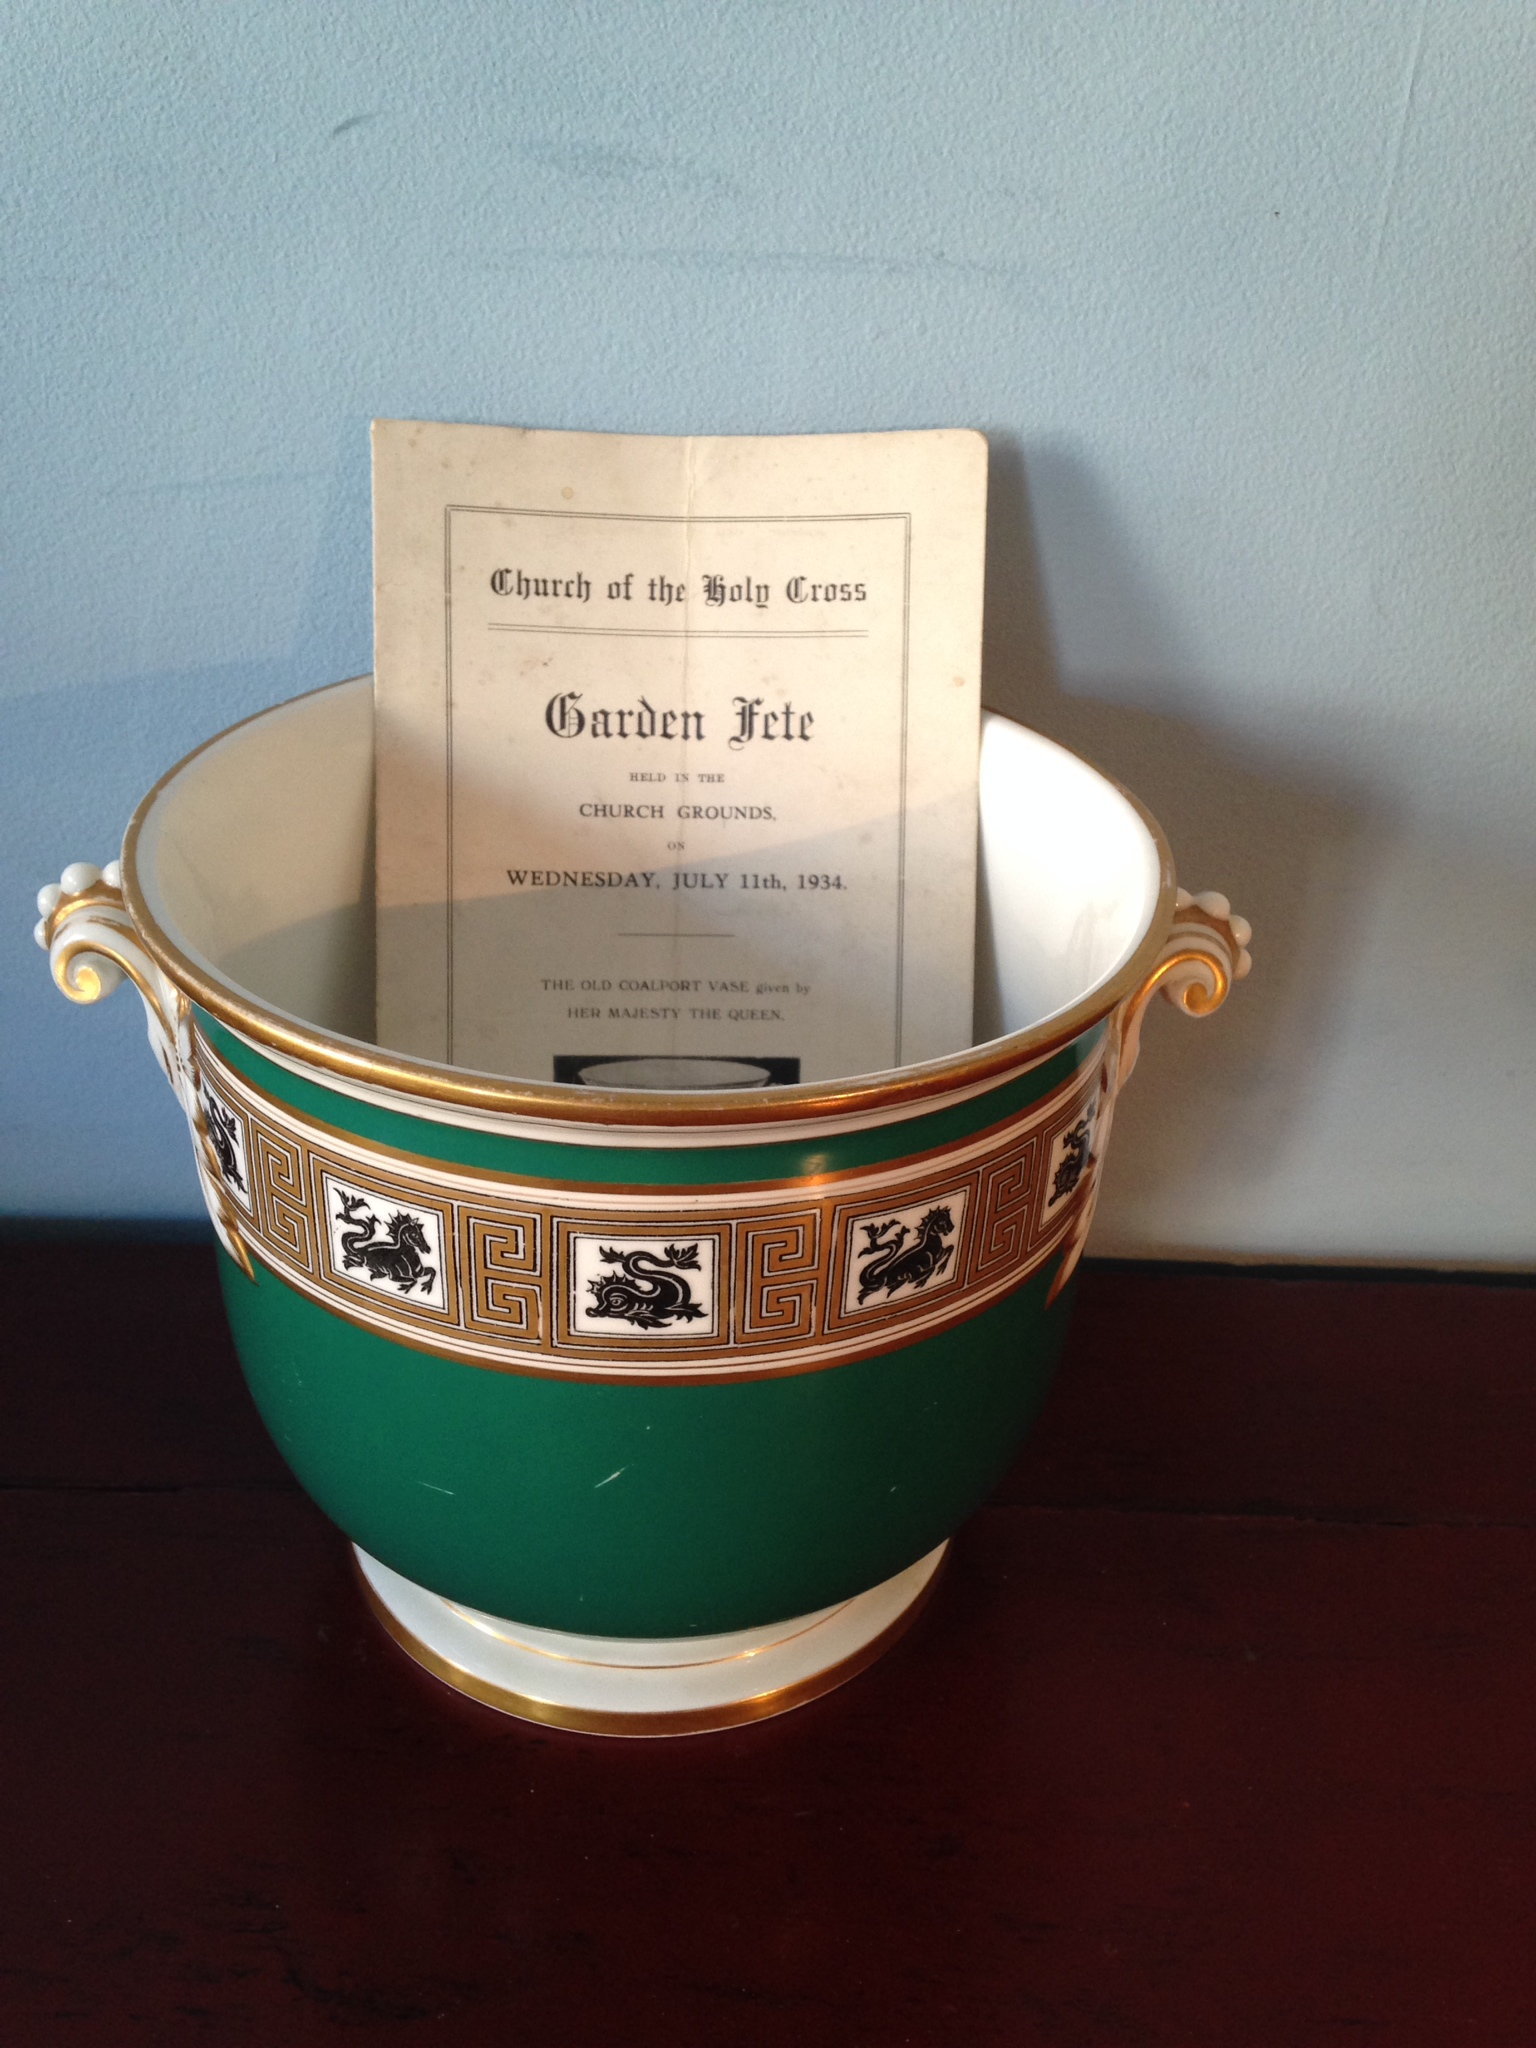 Lot 14 - Good quality Coalport vase gifted by Queen Mary 17.5 cms